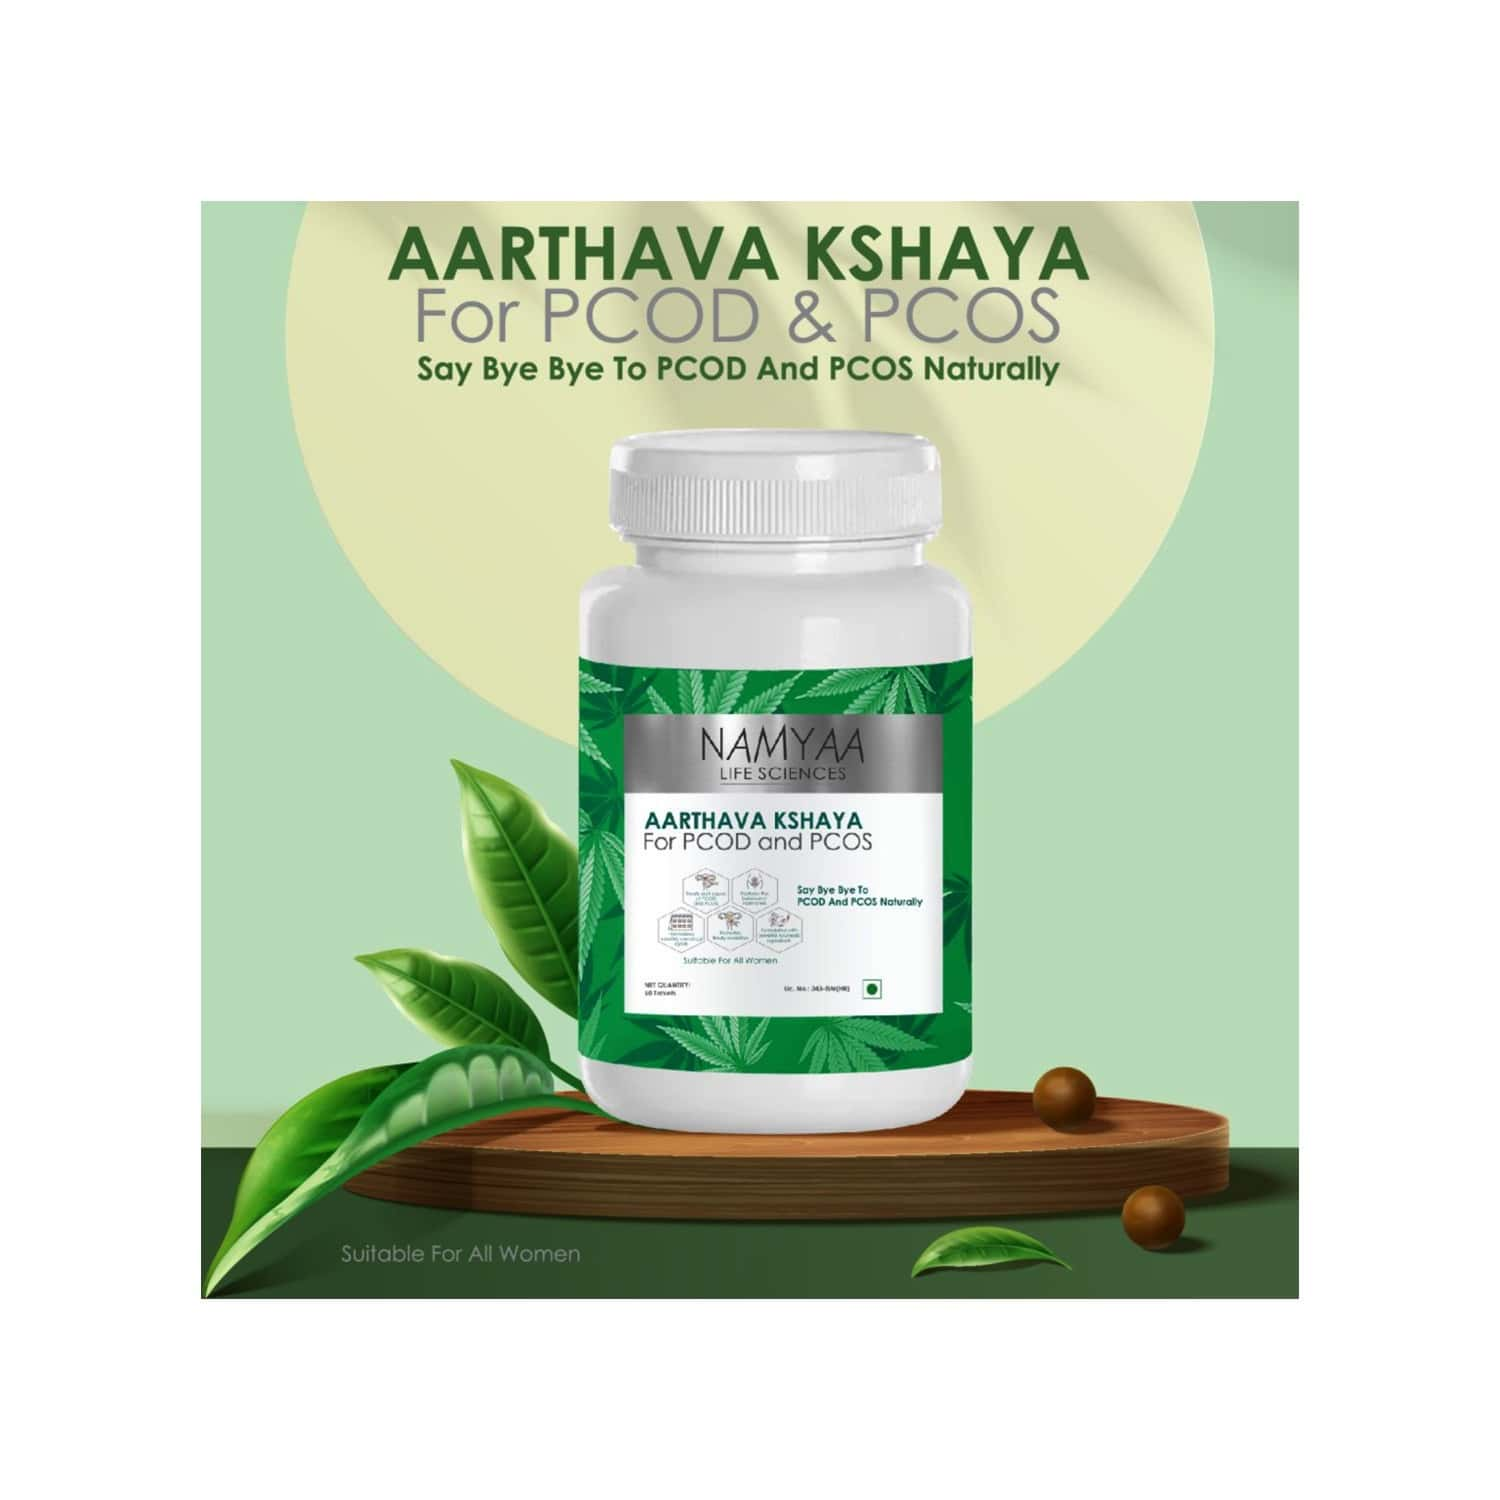 Namyaa Aarthava Kshaya For Pcod And Pcos - Pack Of 60 Tablets - 100 G